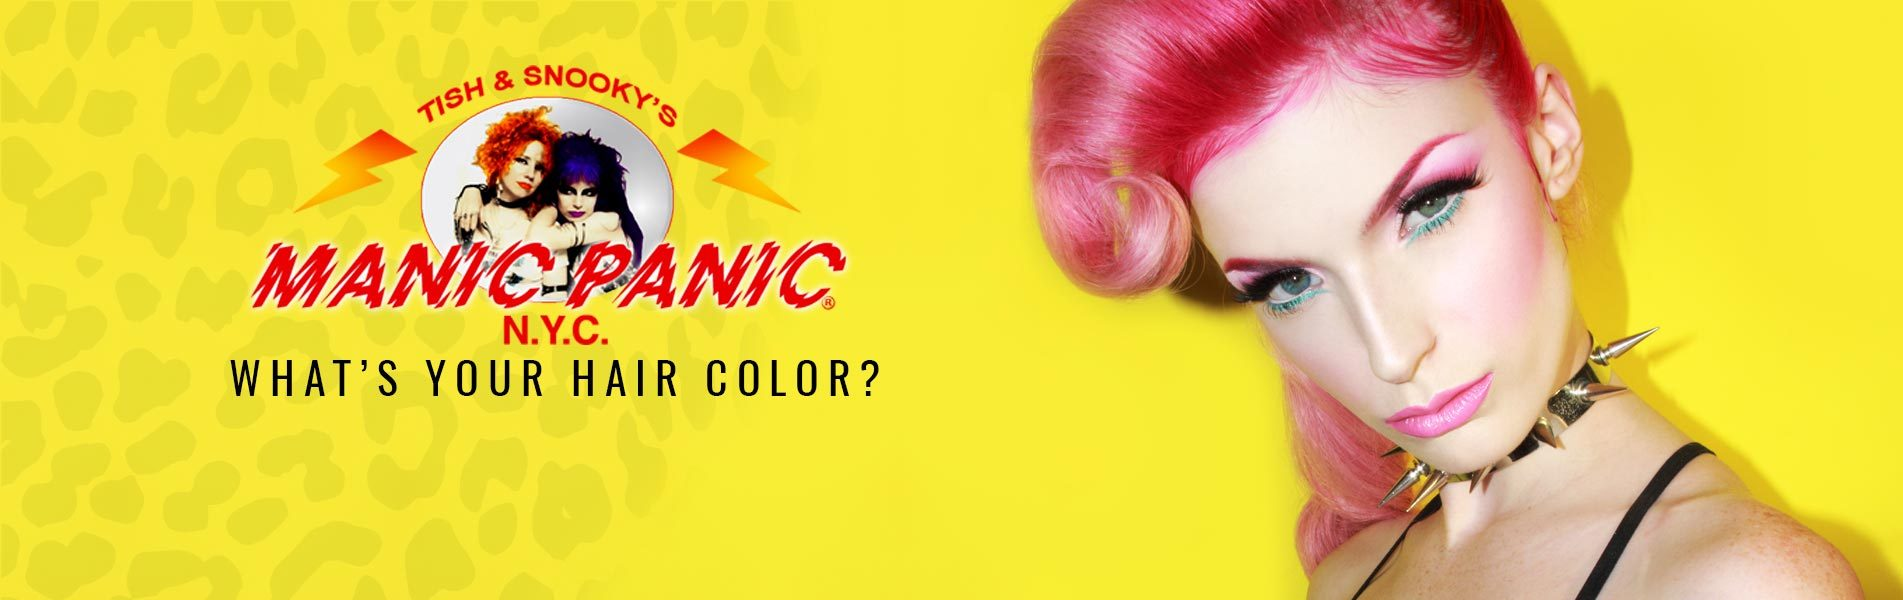 Hair colors banner